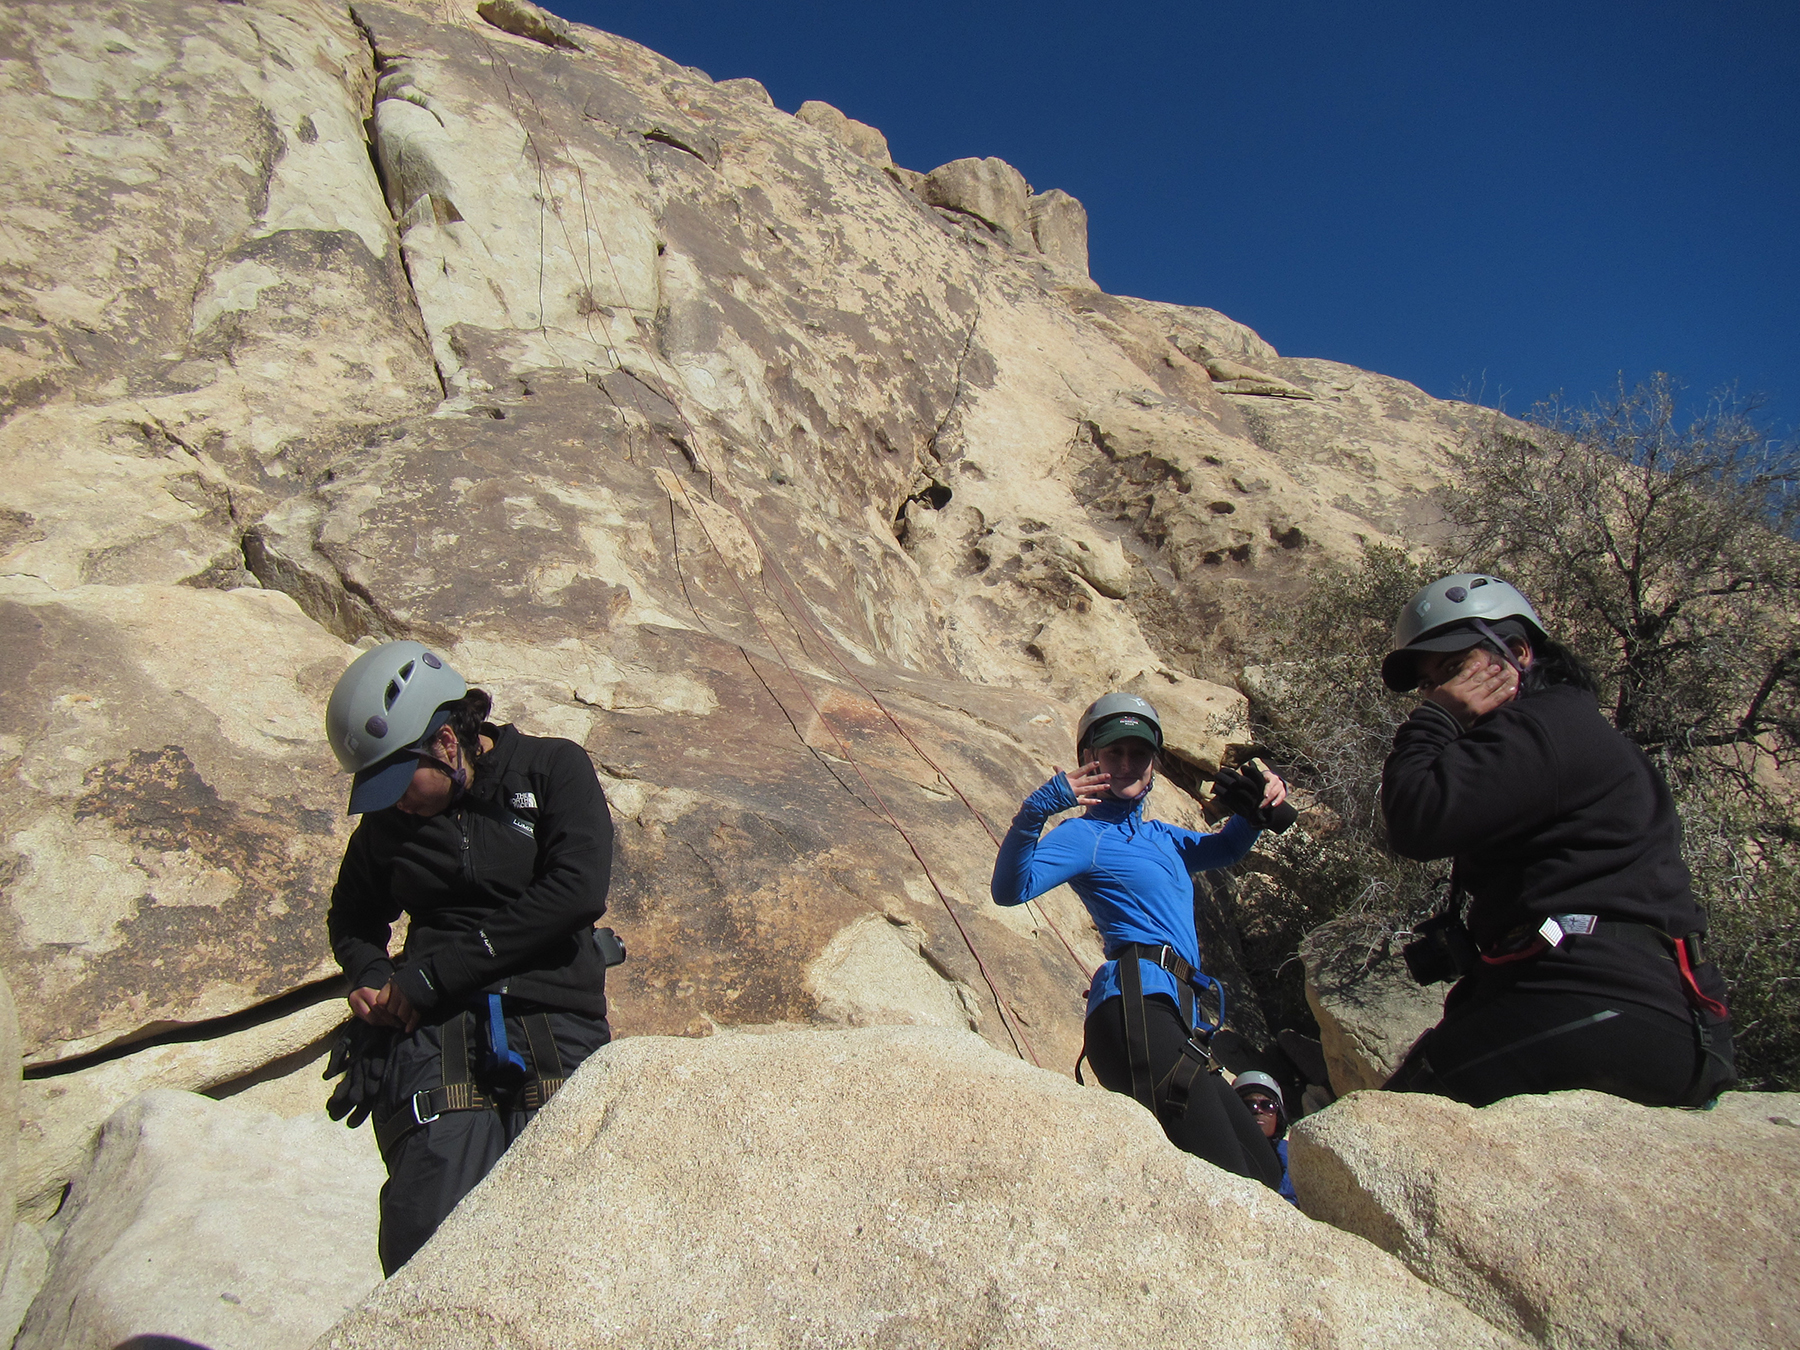 Ingrid, Jamie, and Behtsabe checking harnesses before their climb.